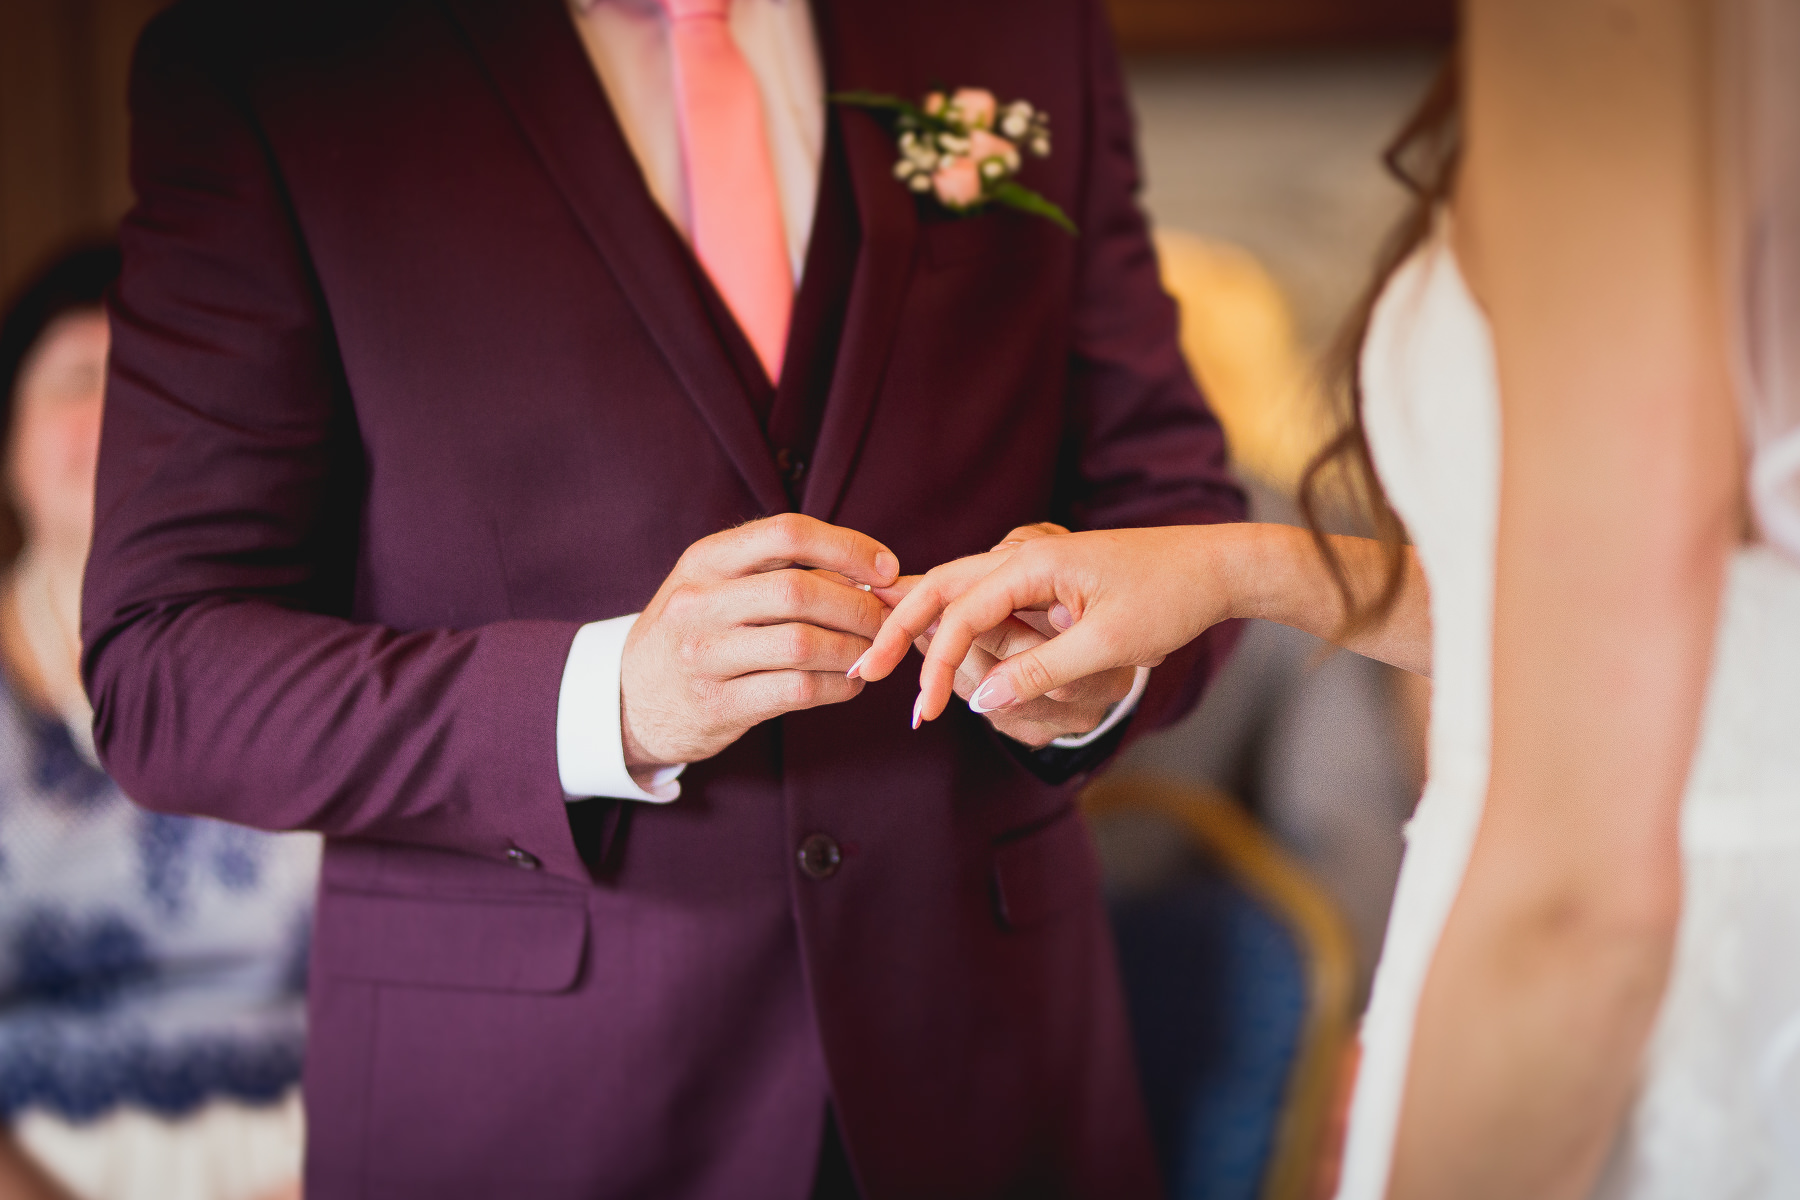 Groom and Bride West Sussex Weddings in Chichester